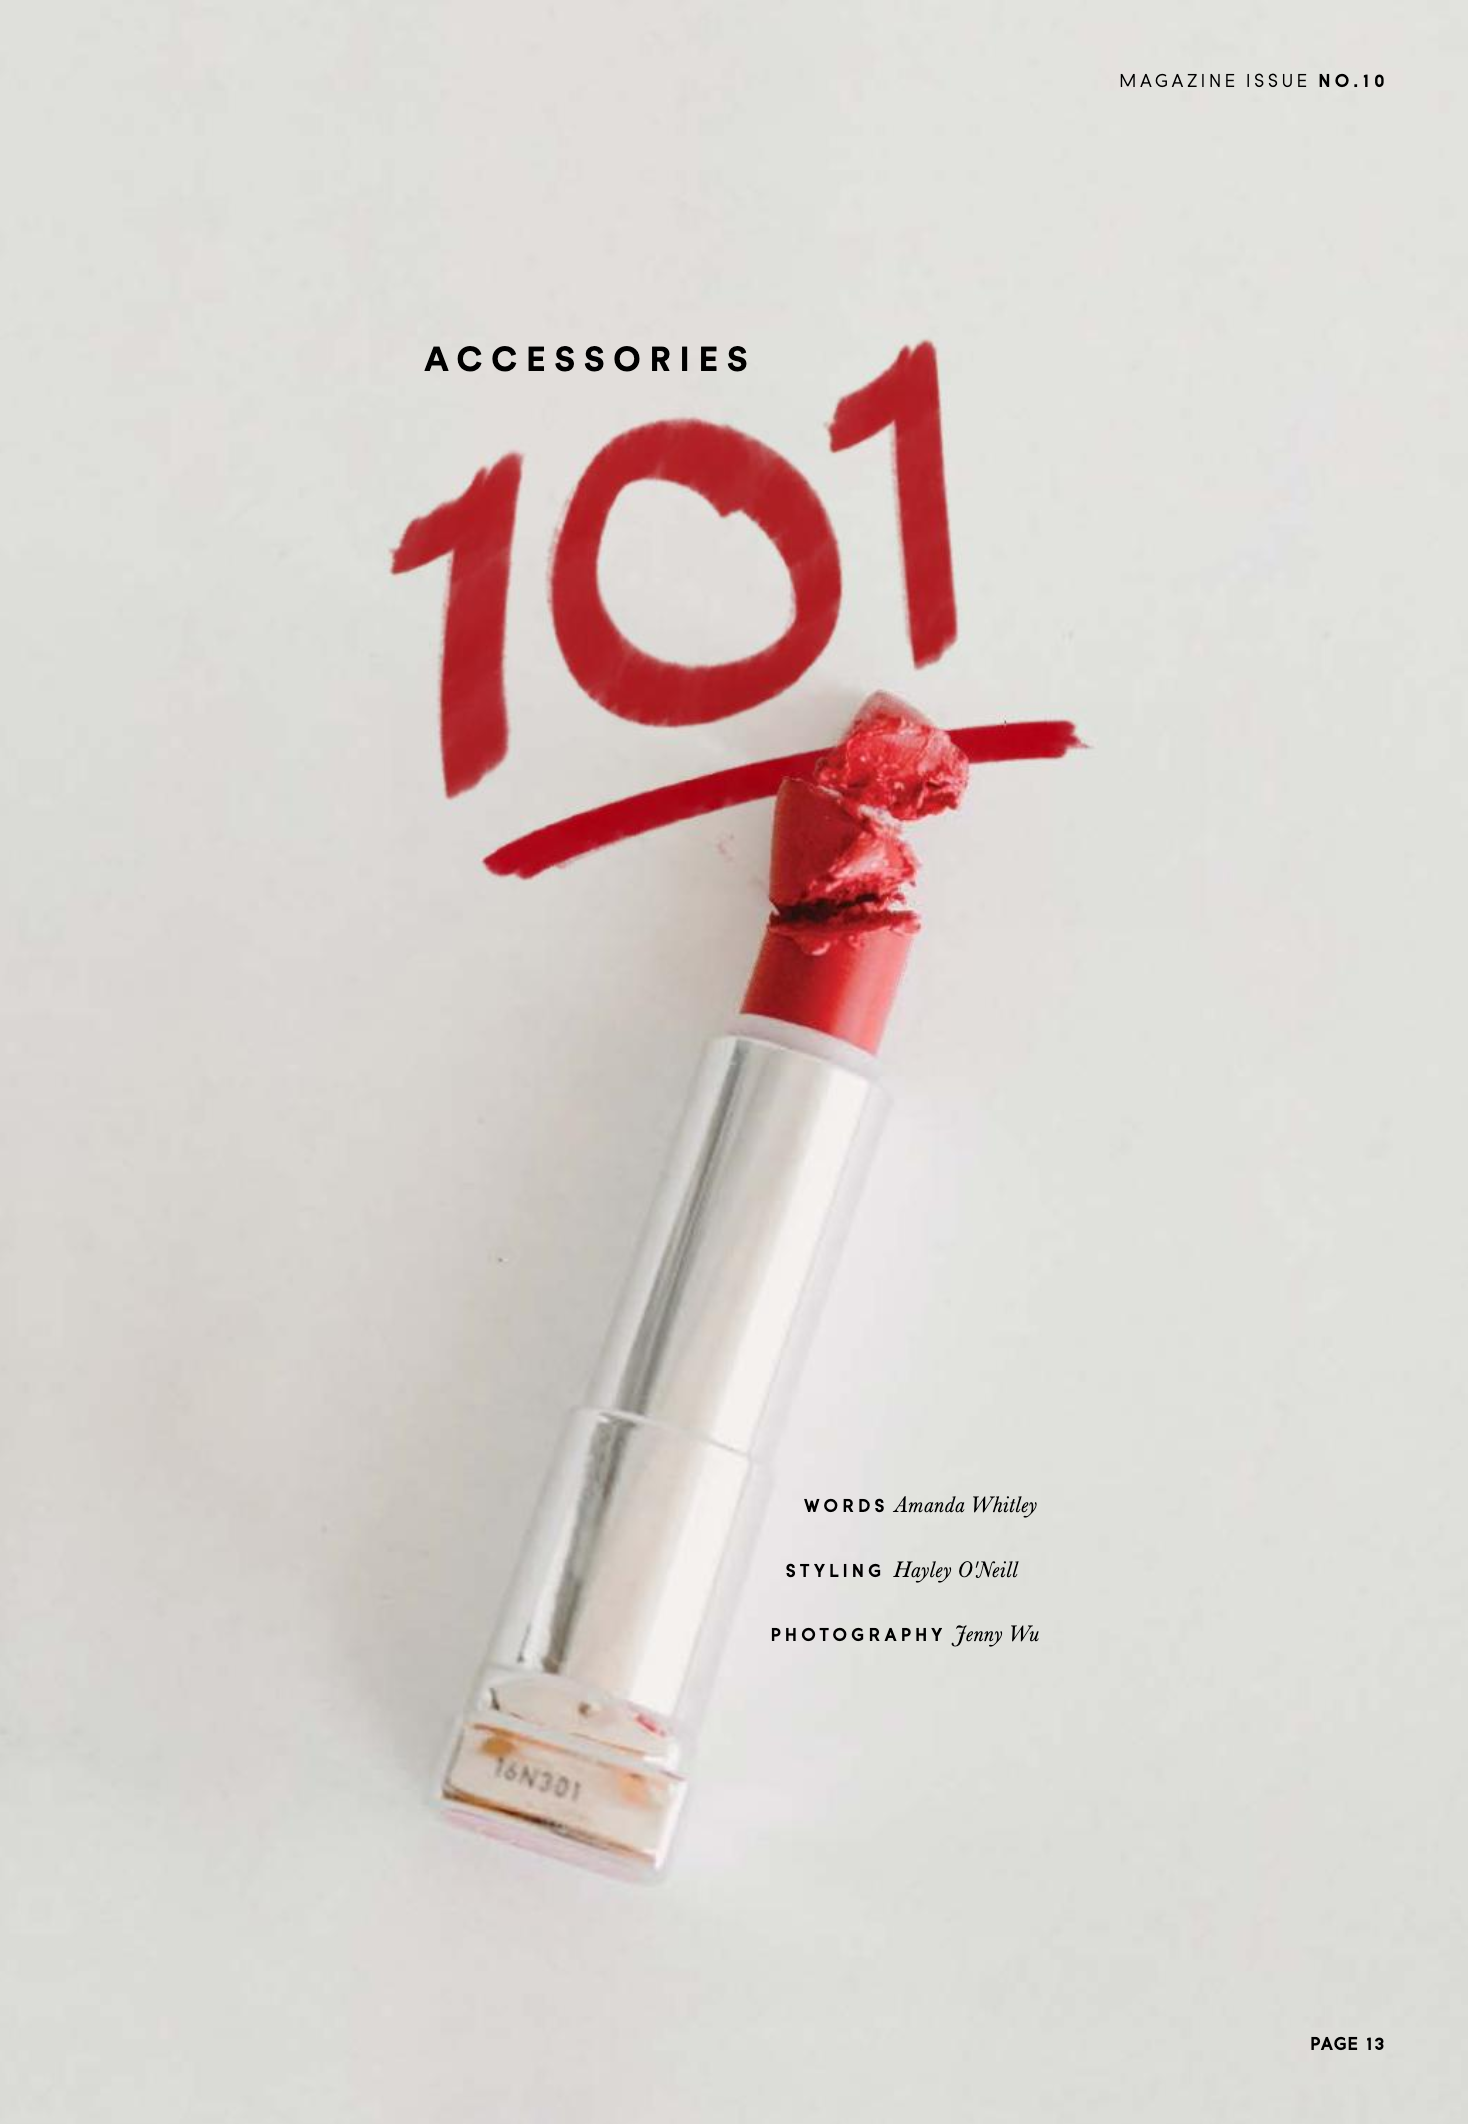 HerCanberra Magazine - Accessories 101 - makeup by Katie Saarikko